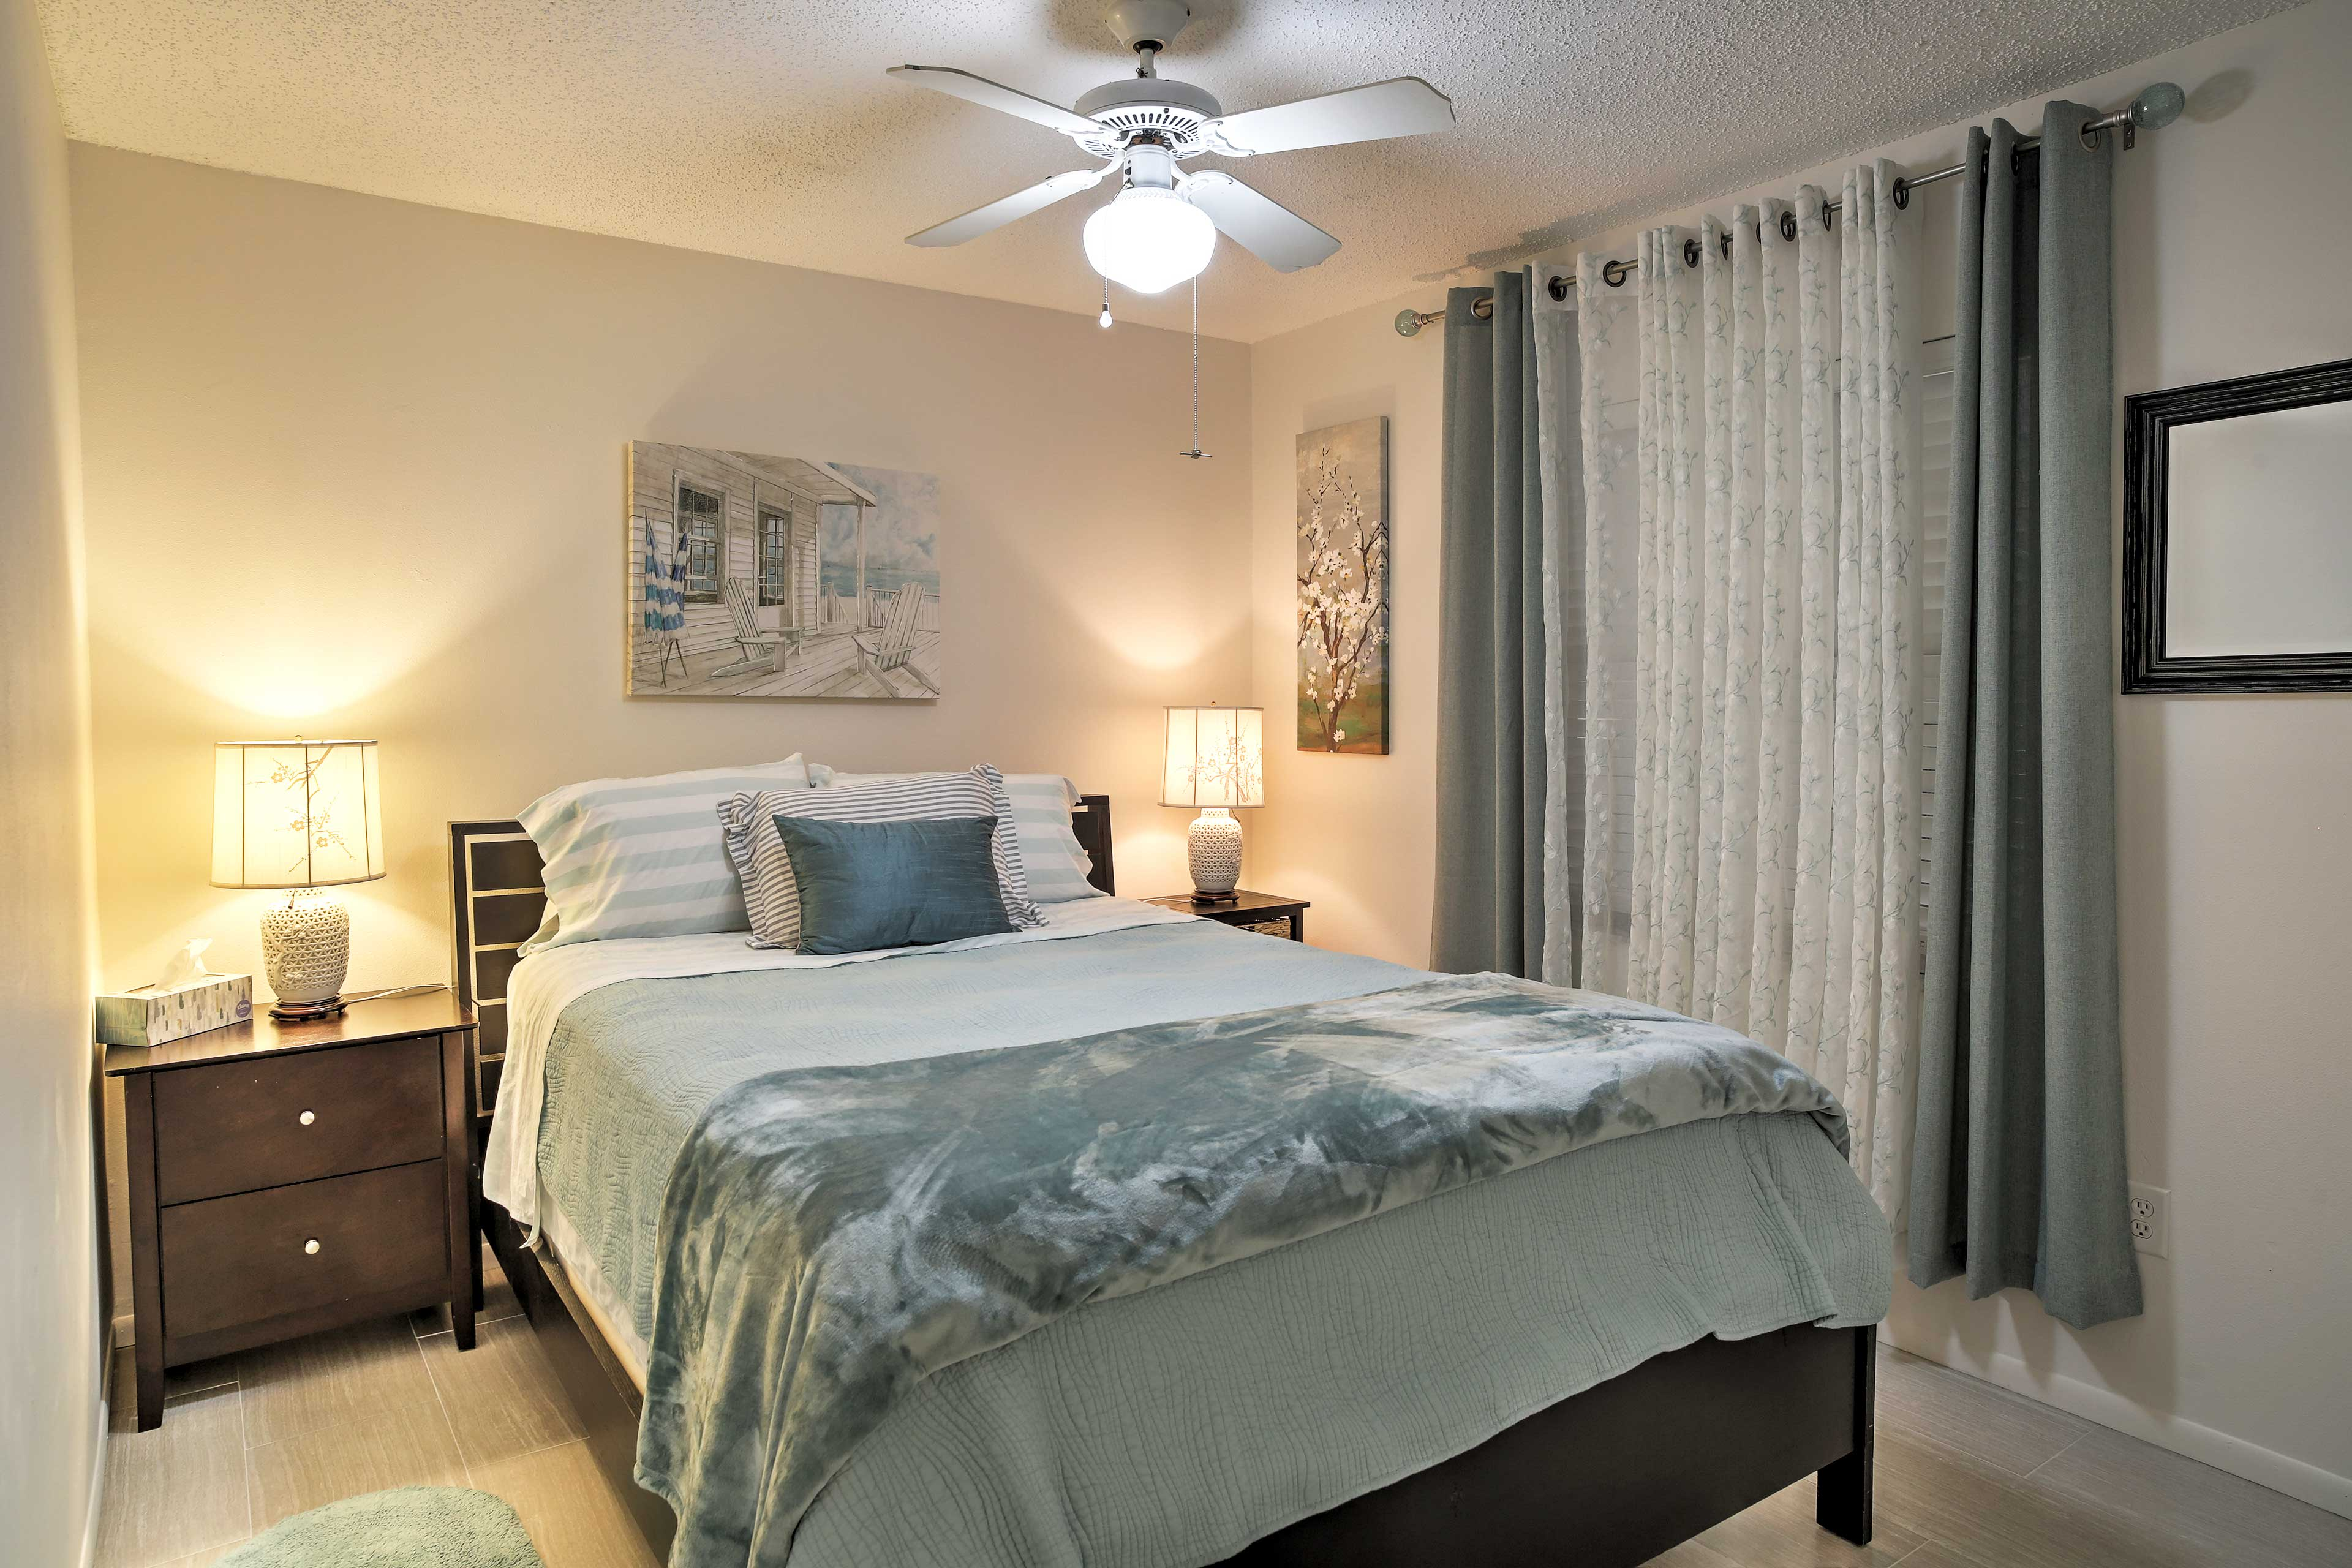 Two guests can enjoy restful nights on this queen bed.